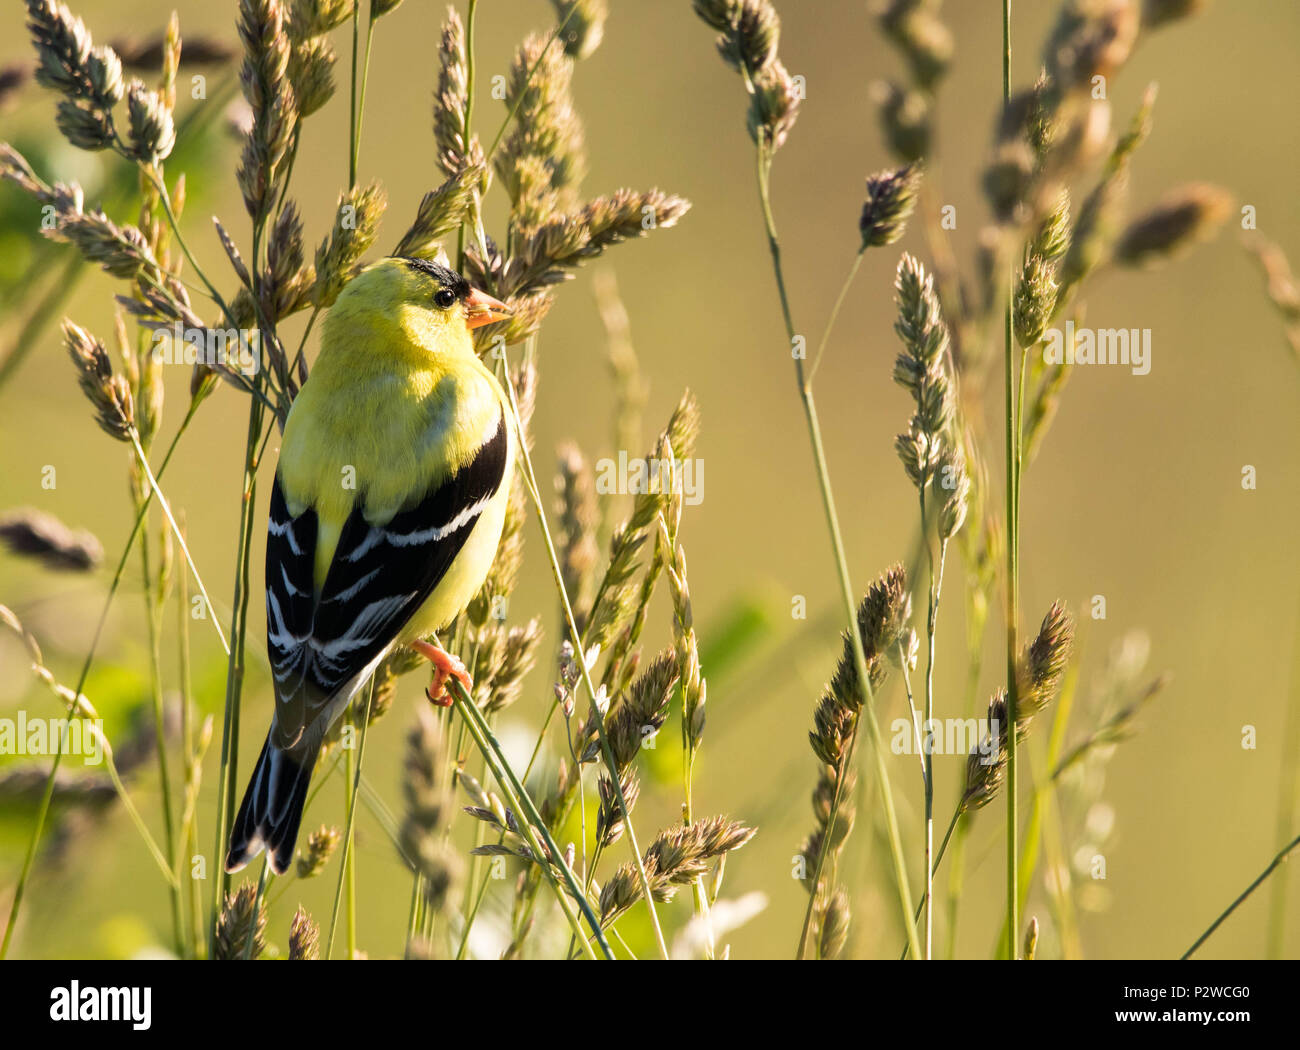 Golden Finch in the morning sun - Stock Image